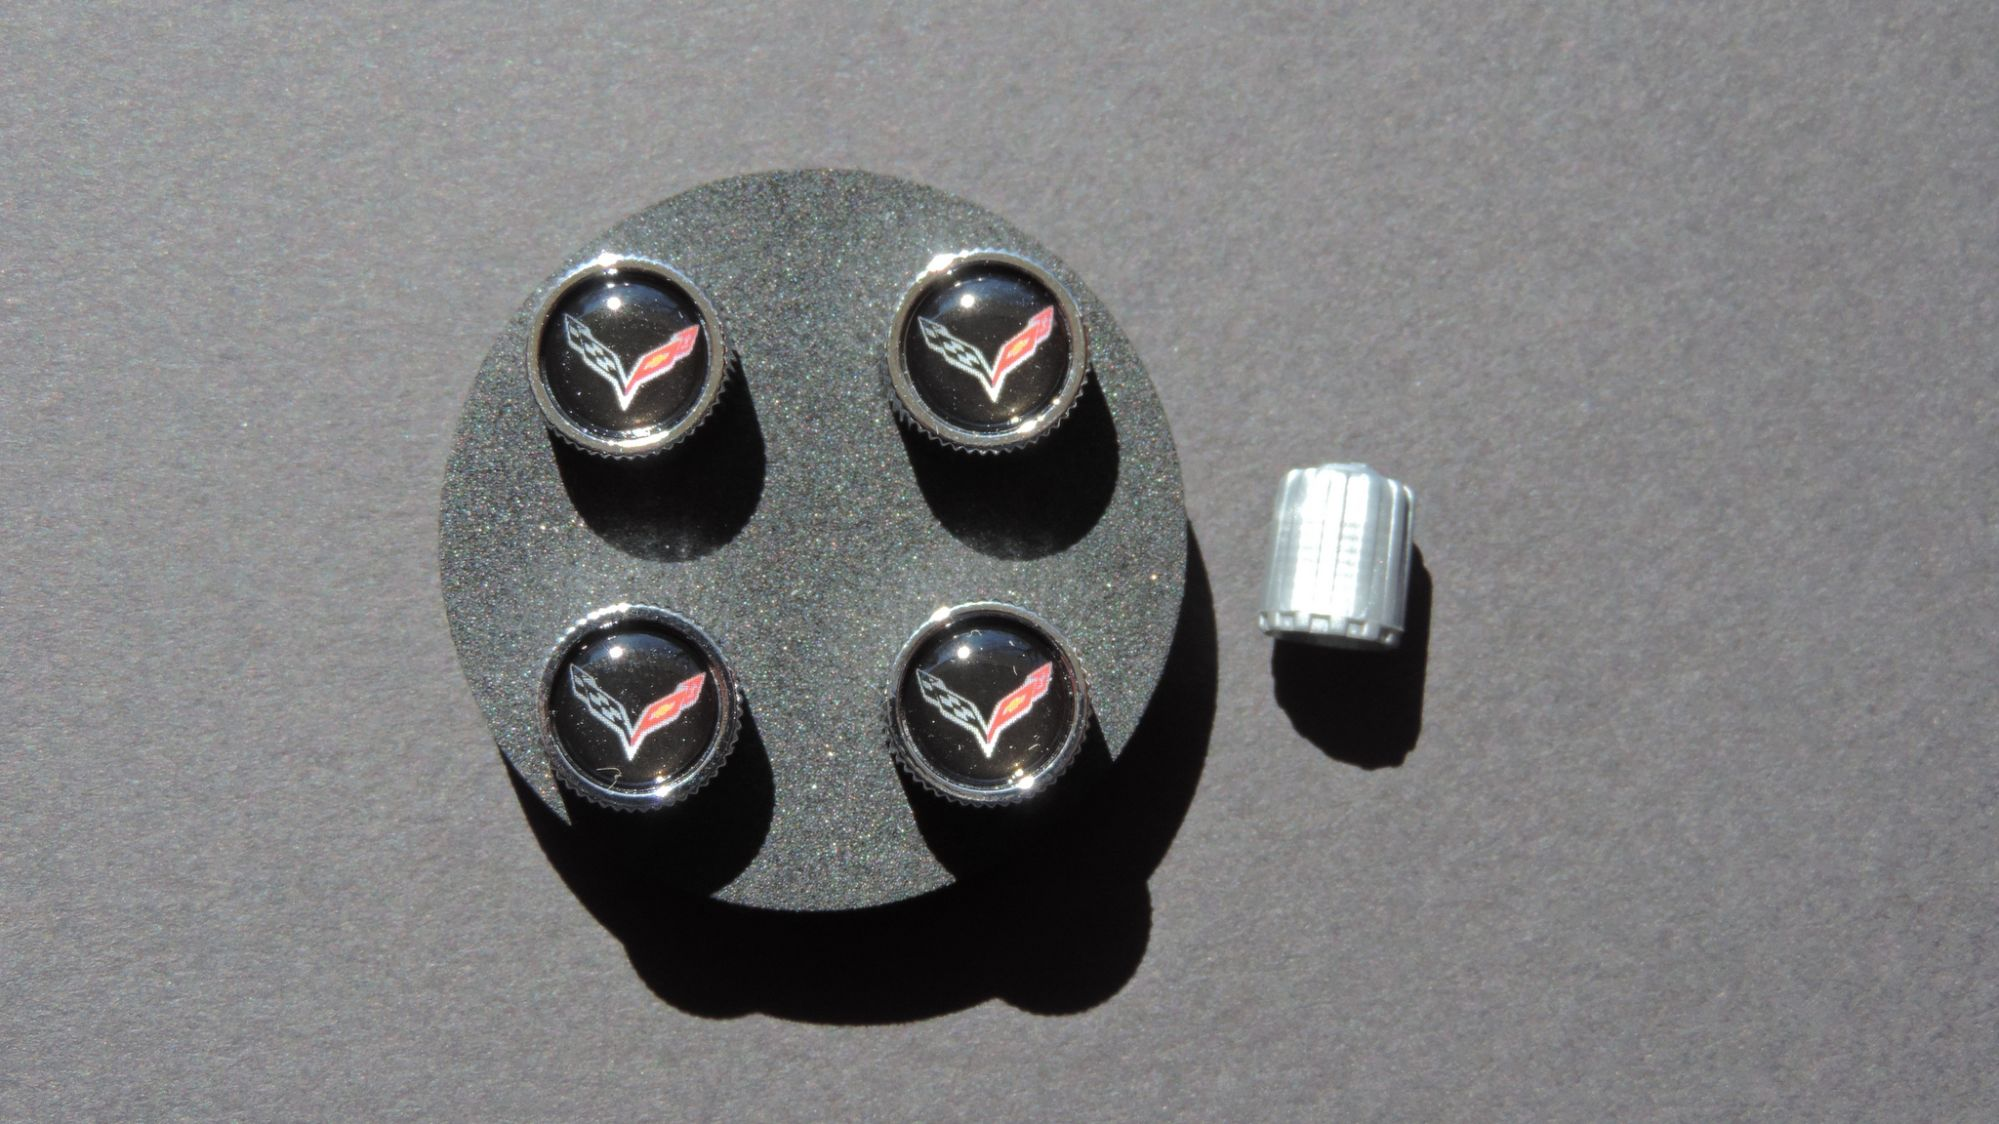 2014-2019 C7 Corvette Valve Stem Cap Kit, GM OEM Part, Black Background w/ C7 Logo